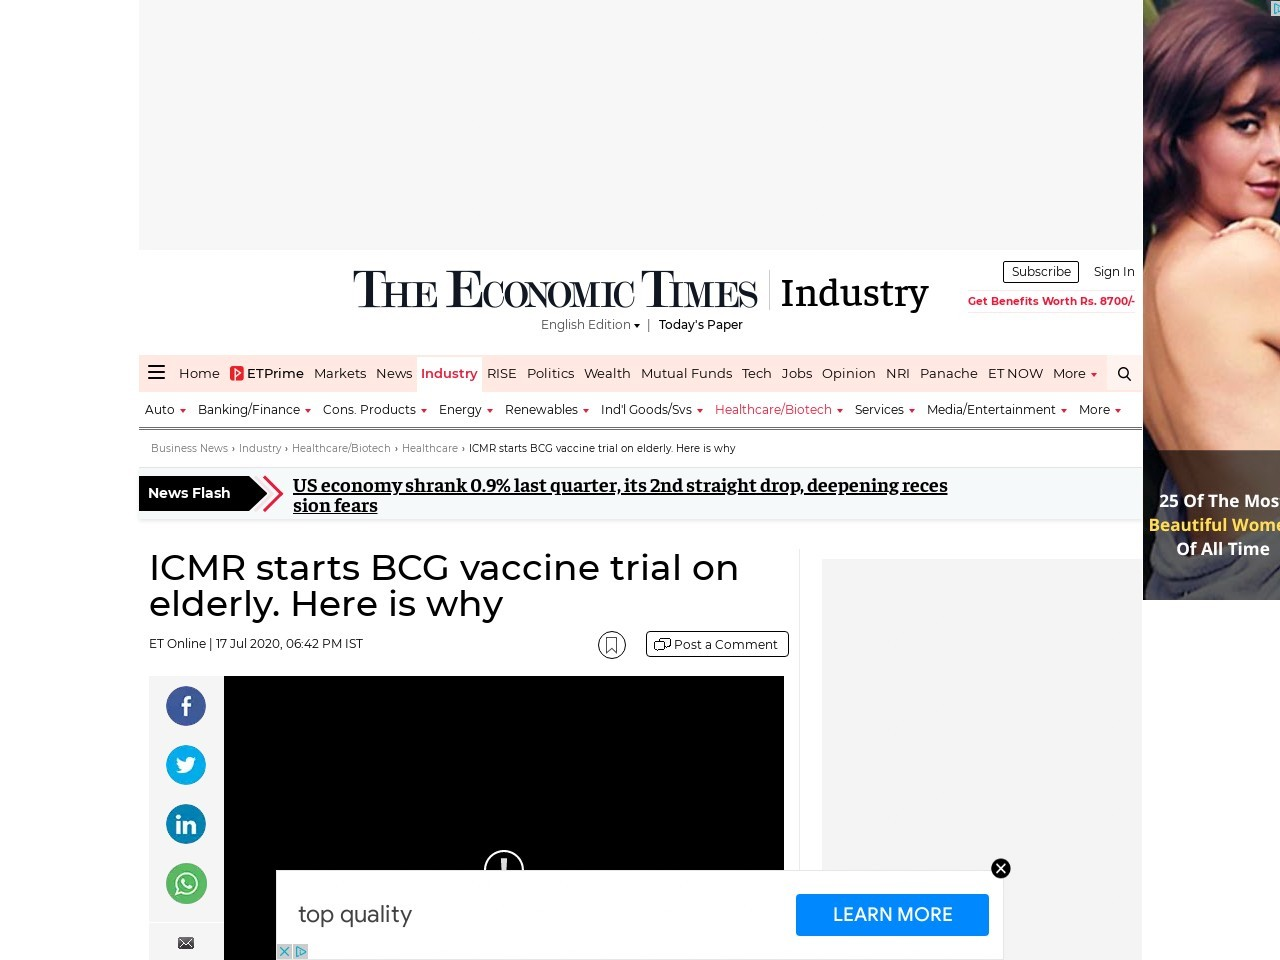 ICMR starts BCG vaccine trial on elderly. Here is why